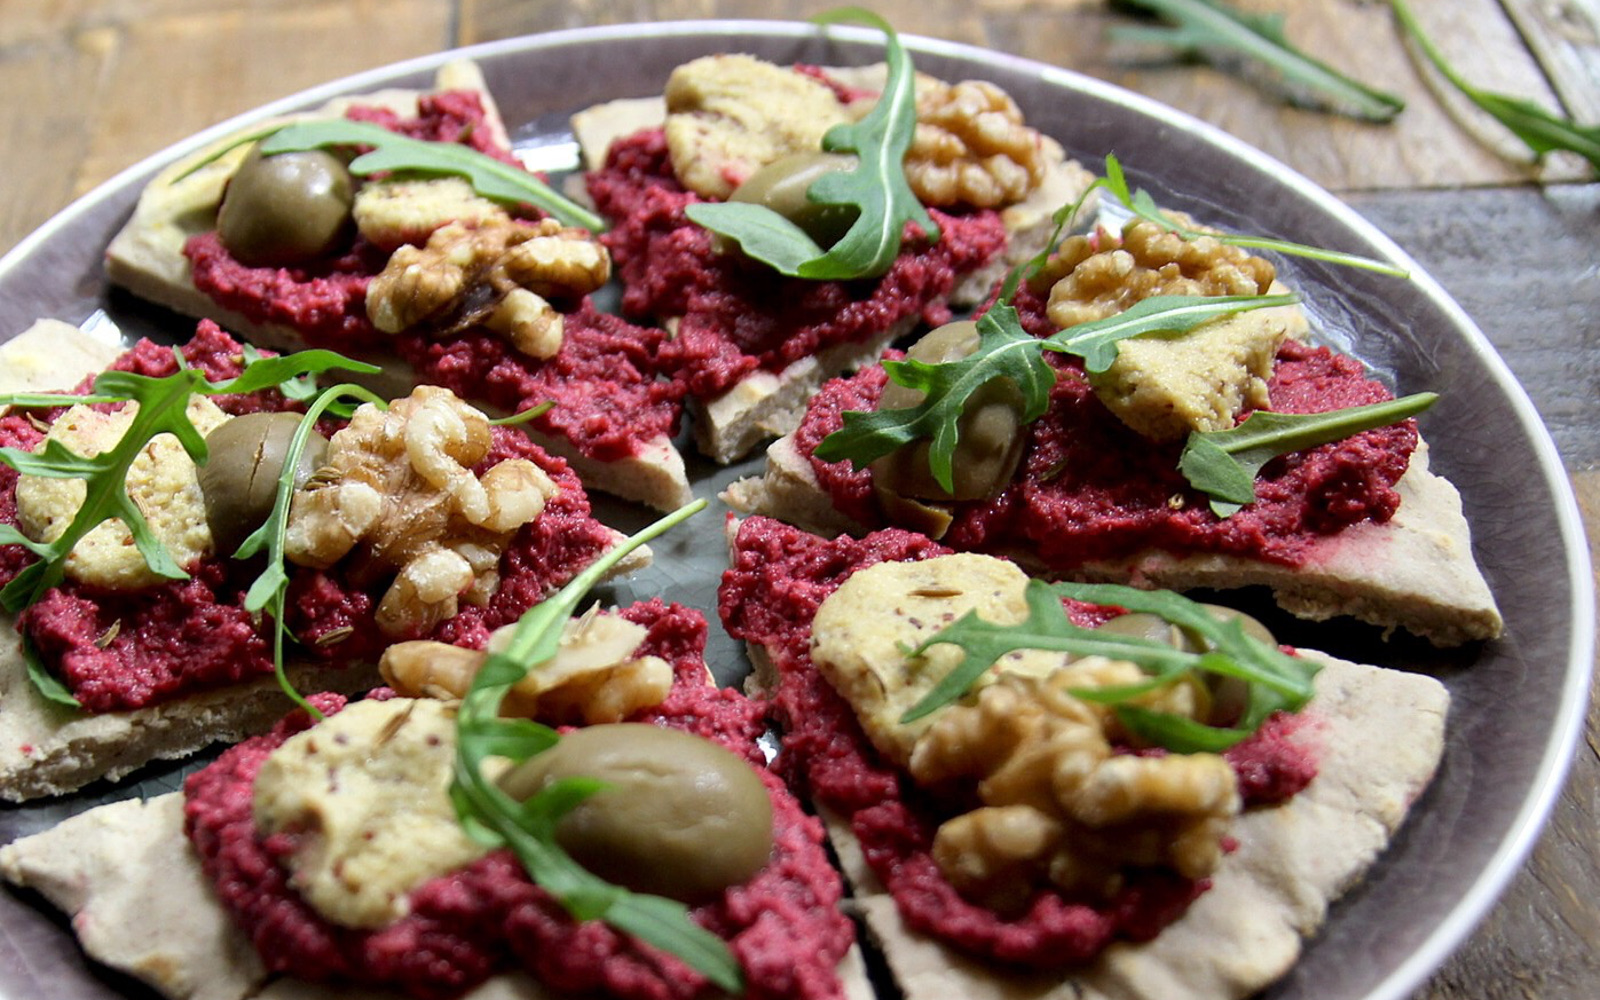 Rustic Buckwheat Flatbread Pizza With Beet Hummus and Cashew Cheese